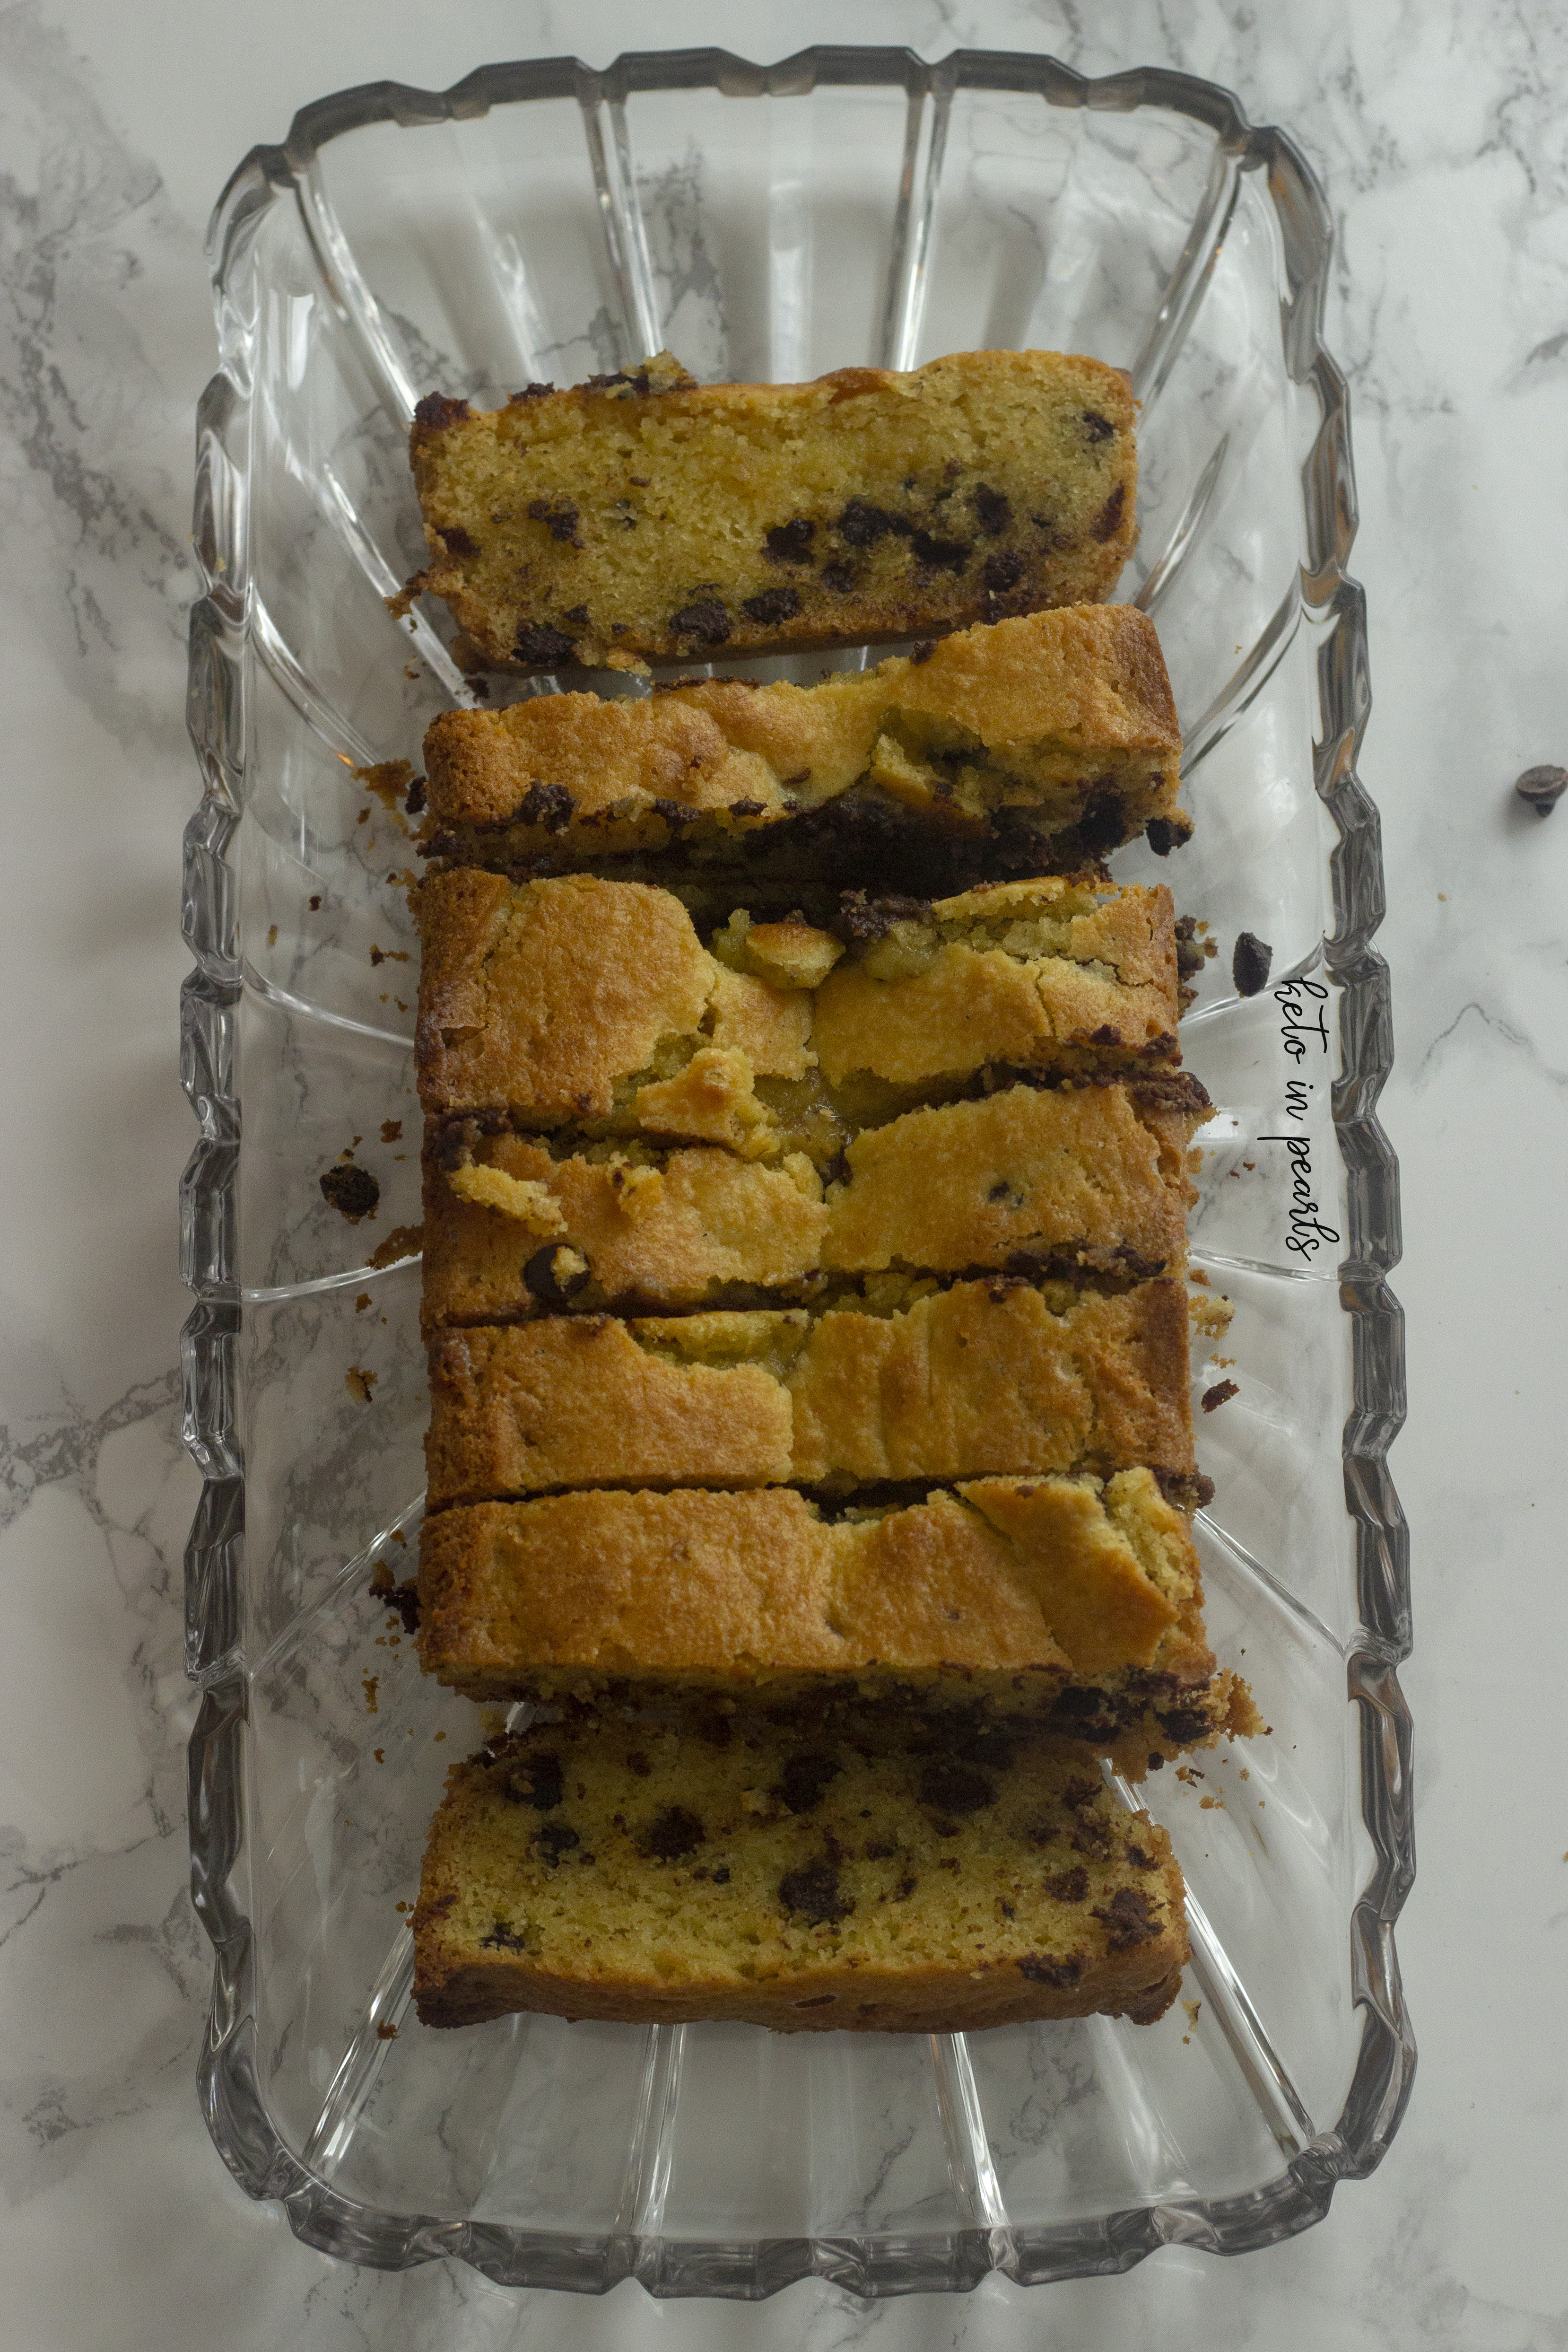 Keto banana bread with chocolate chips! Buttery, soft, and scrumptious. Only 4 net carbs for one big slice!